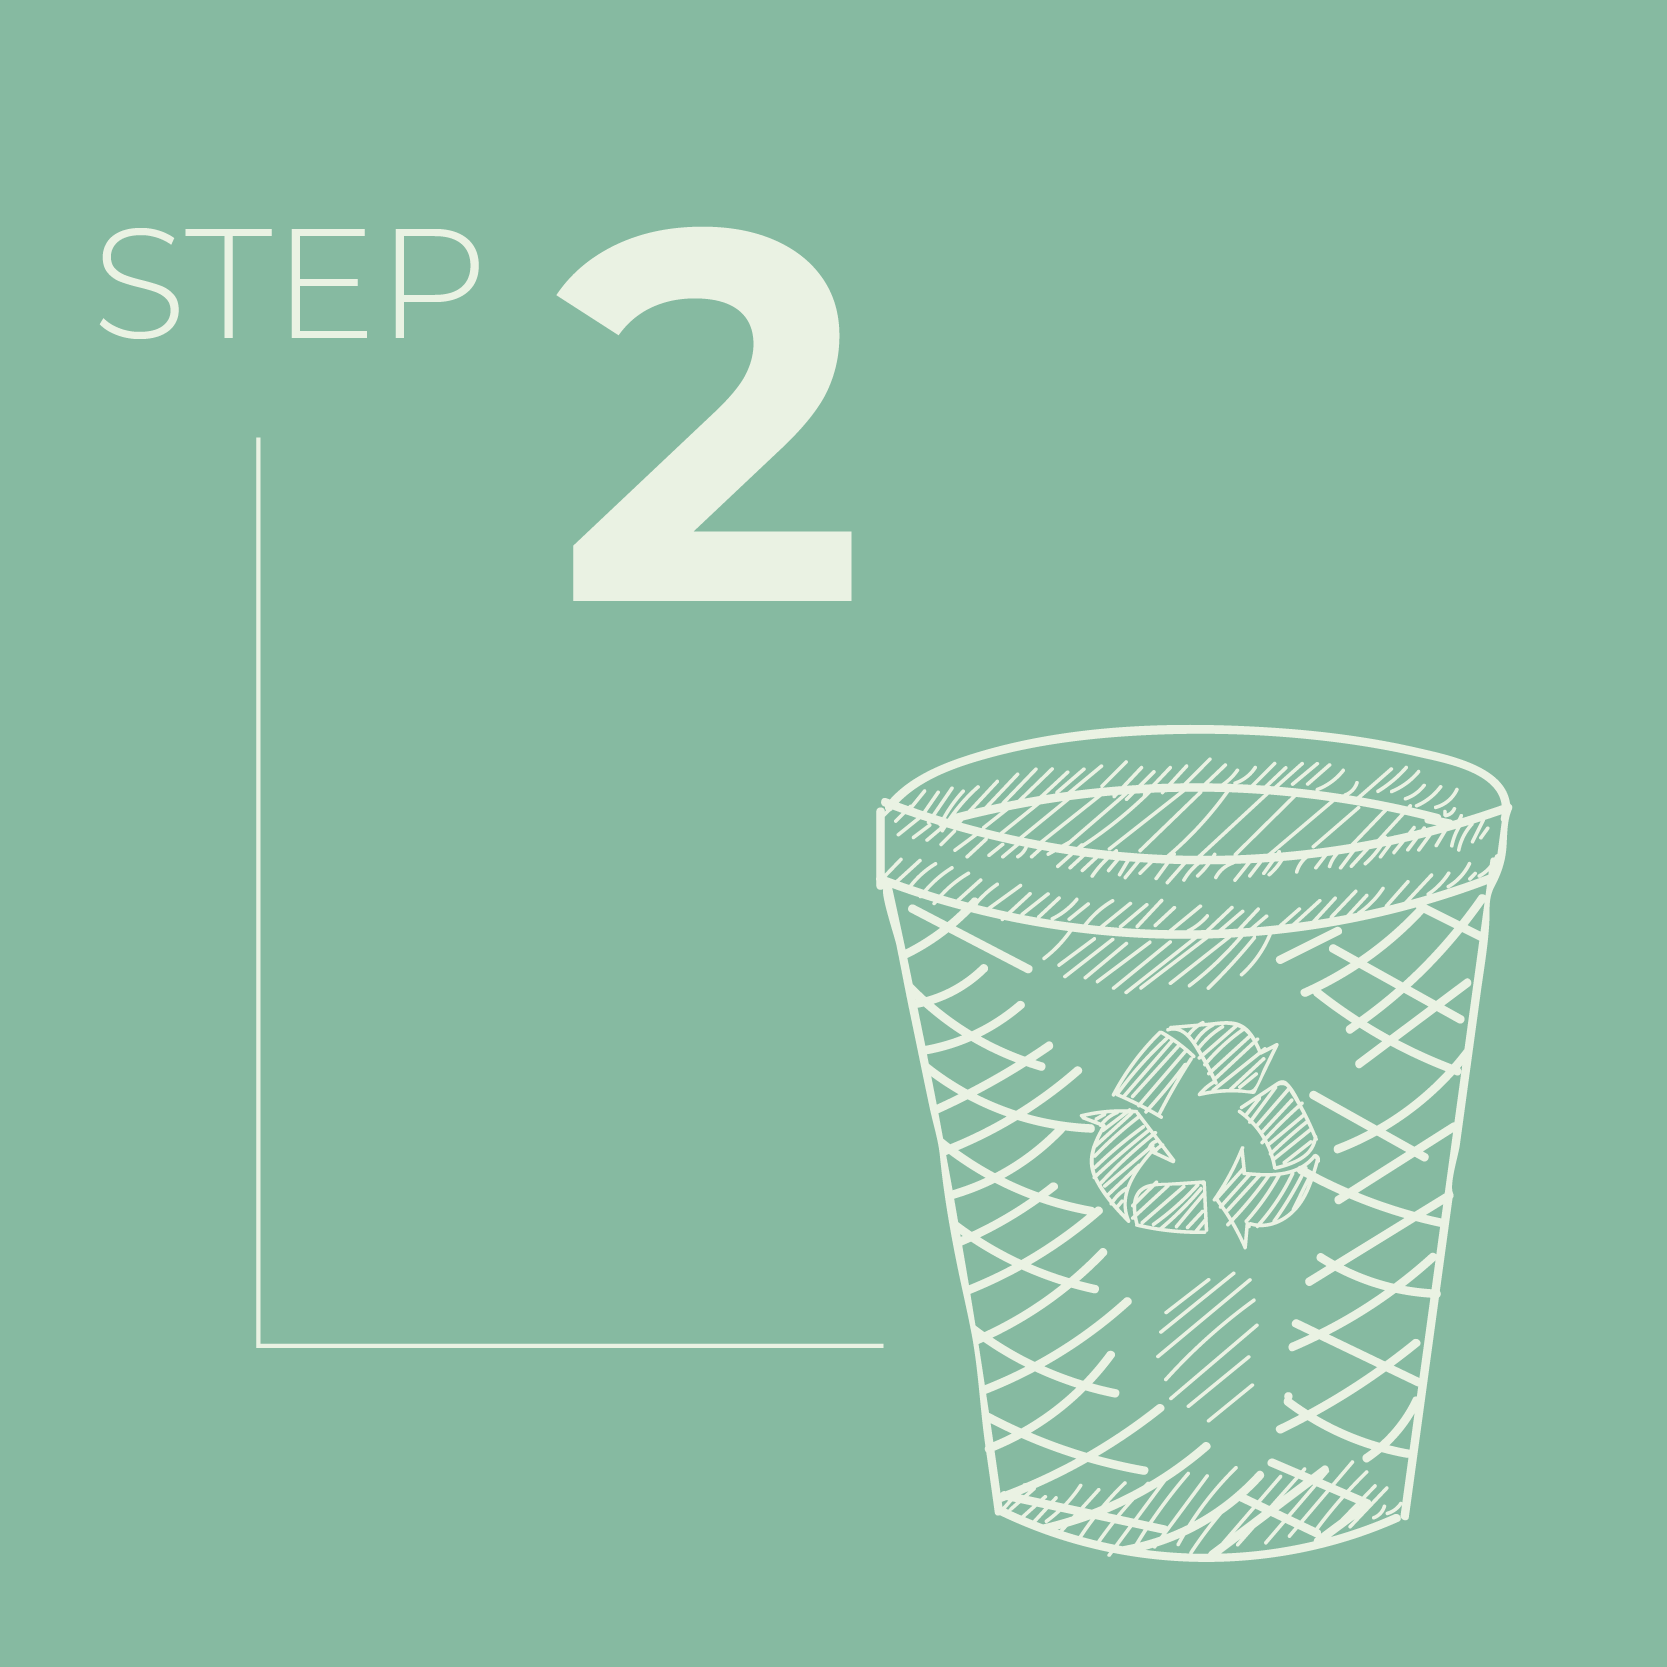 Receive your labeled compost container and start filling it up with food and other compostable material.